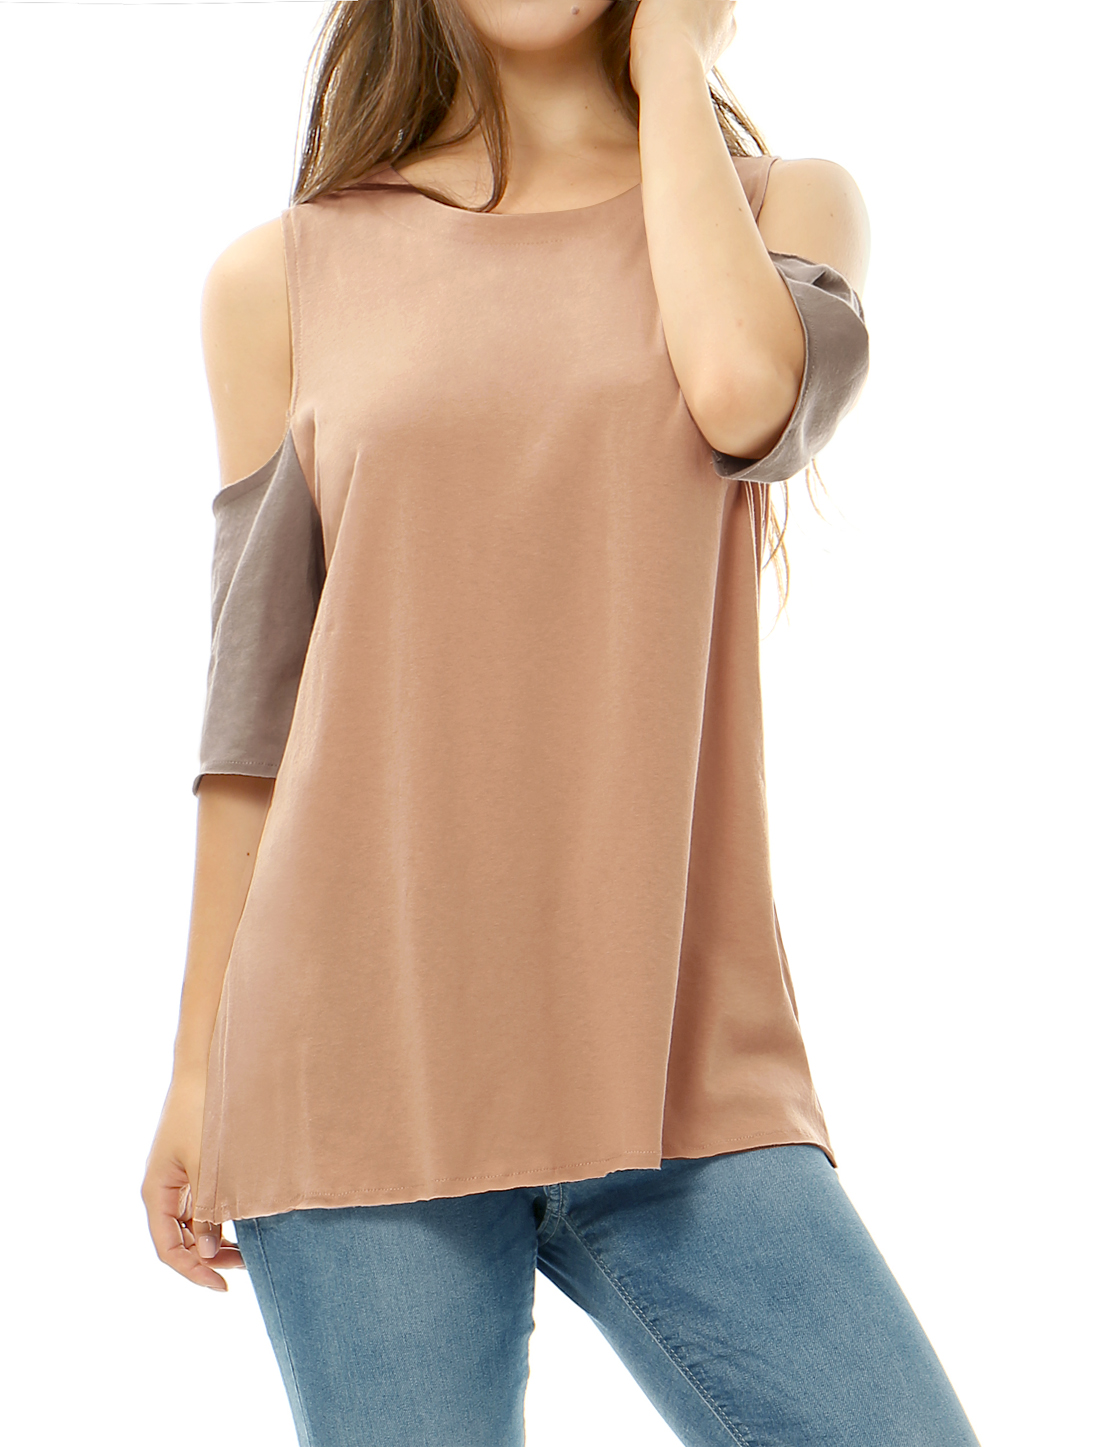 Women Cold Shoulder Contrast Color Raw Edge Tunic Top Pink XS